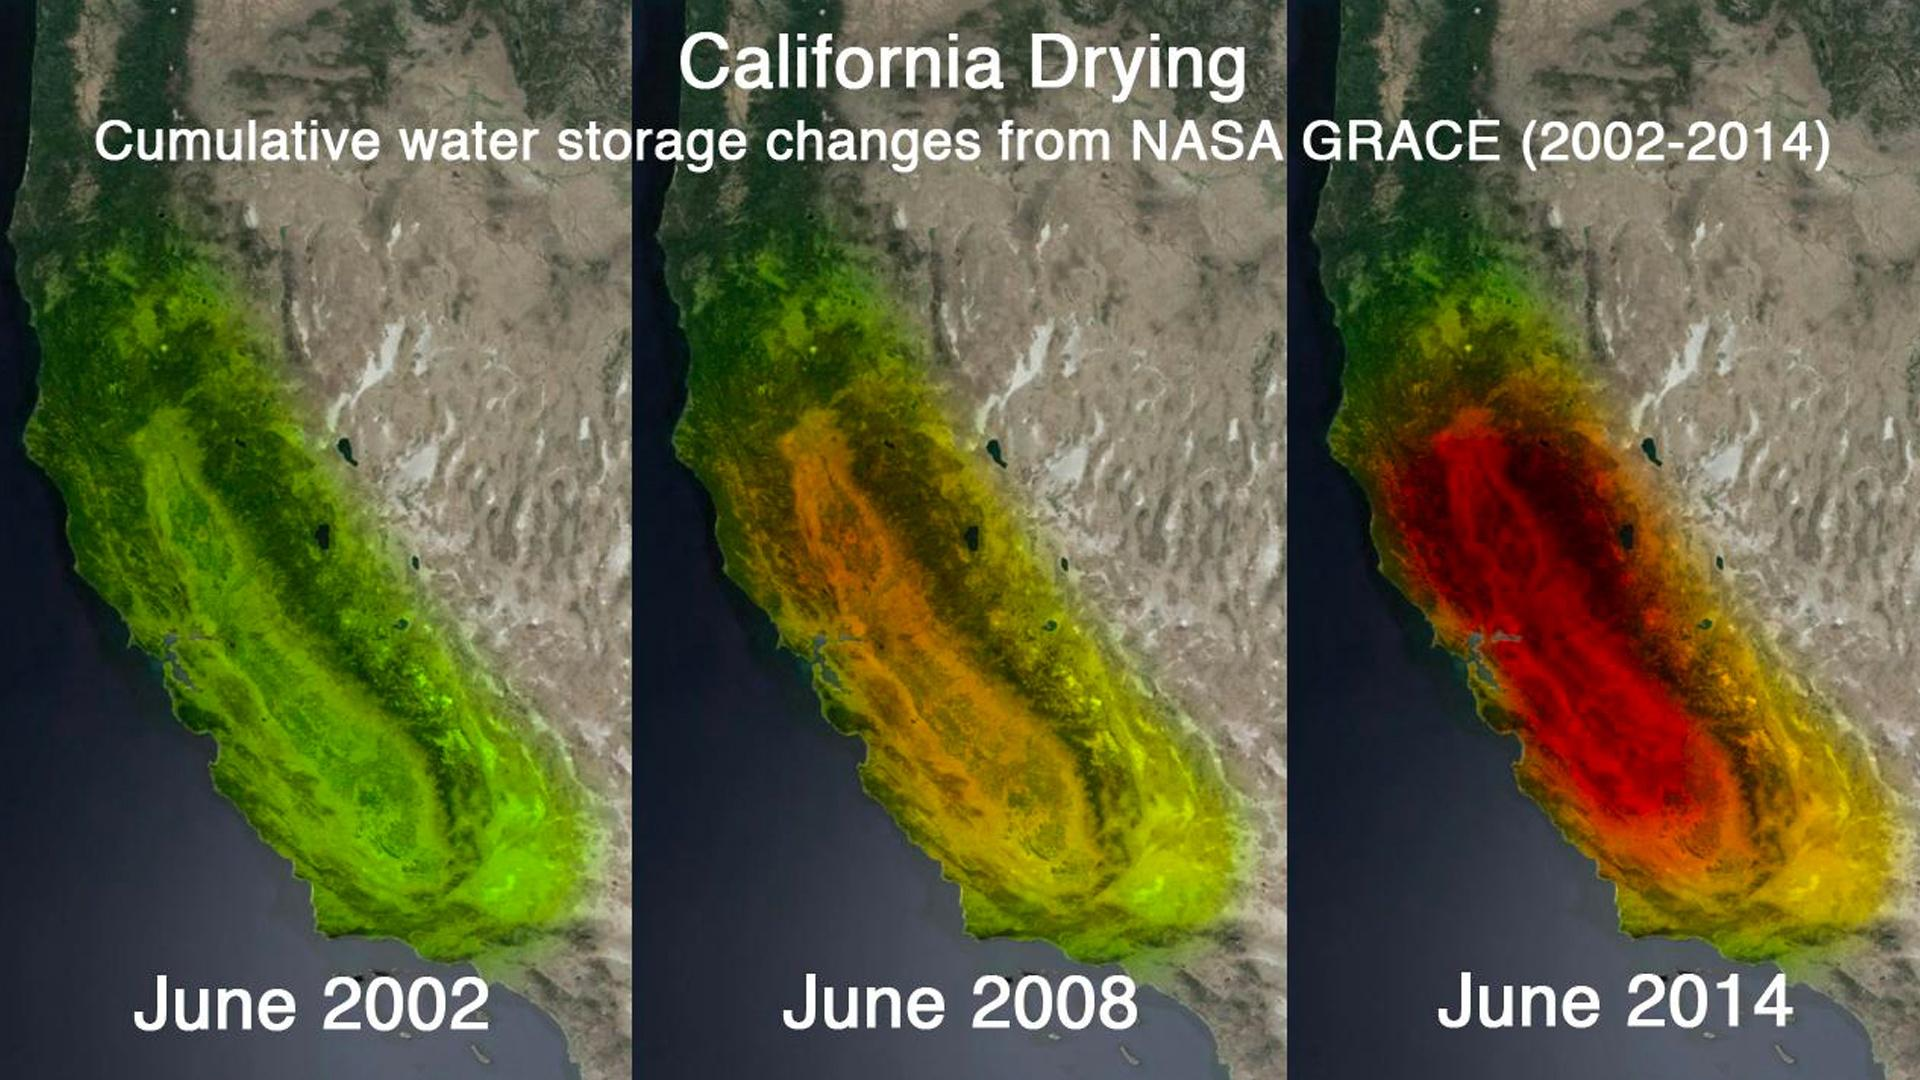 The satellites called GRACE–Gravity Recovery and Climate Experiment–can see into the earth's crust, and measure water storage changes in aquifer systems across the earth.